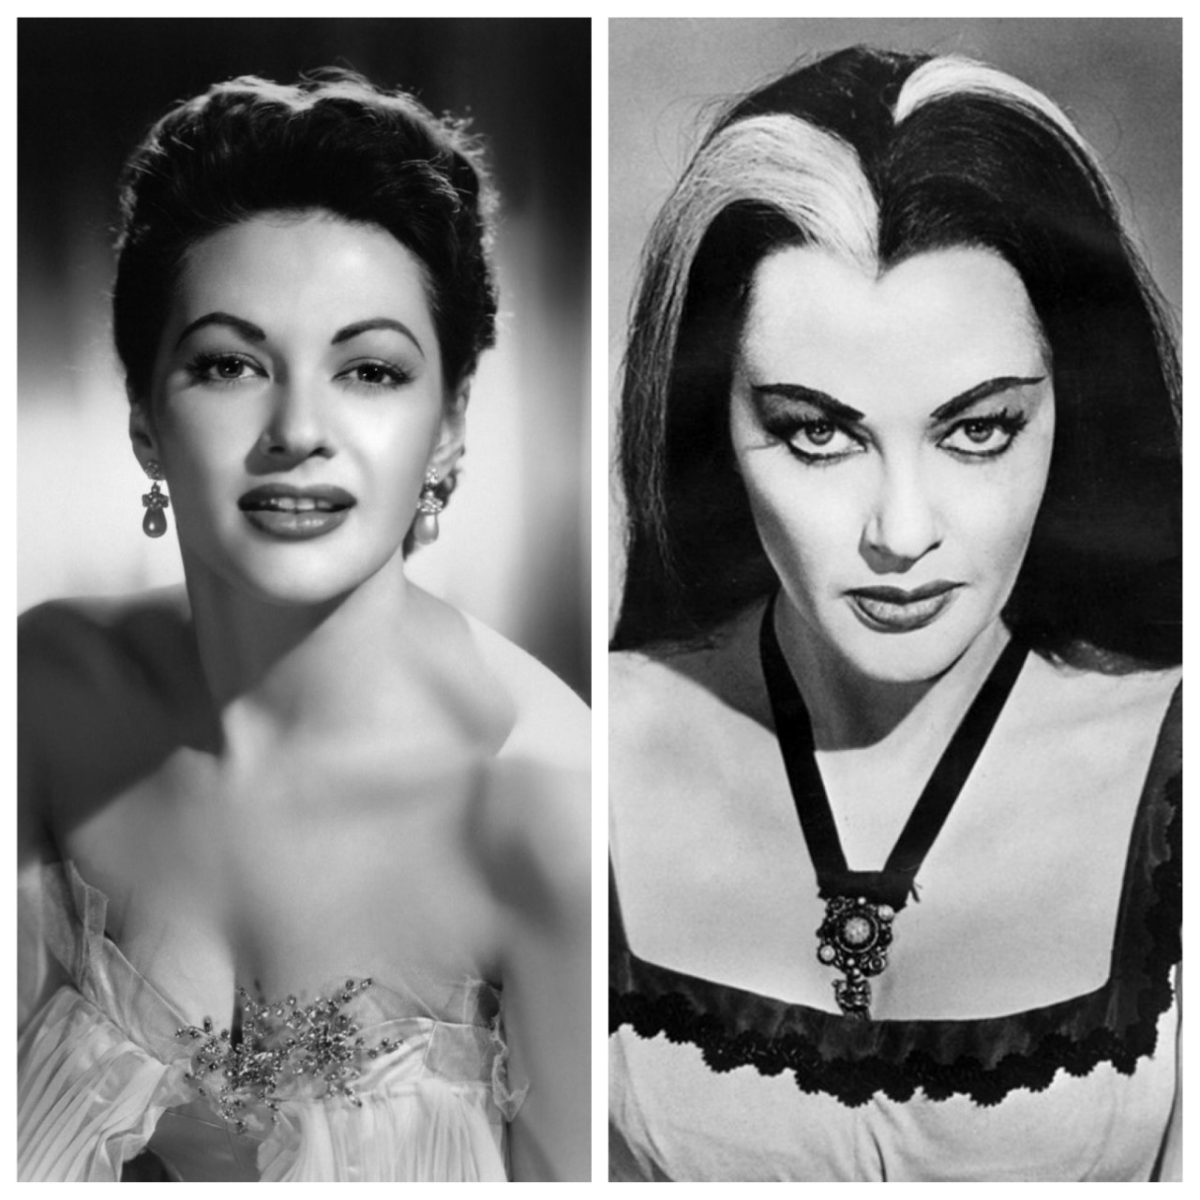 Yvonne De Carlo, The Movie Star Munster